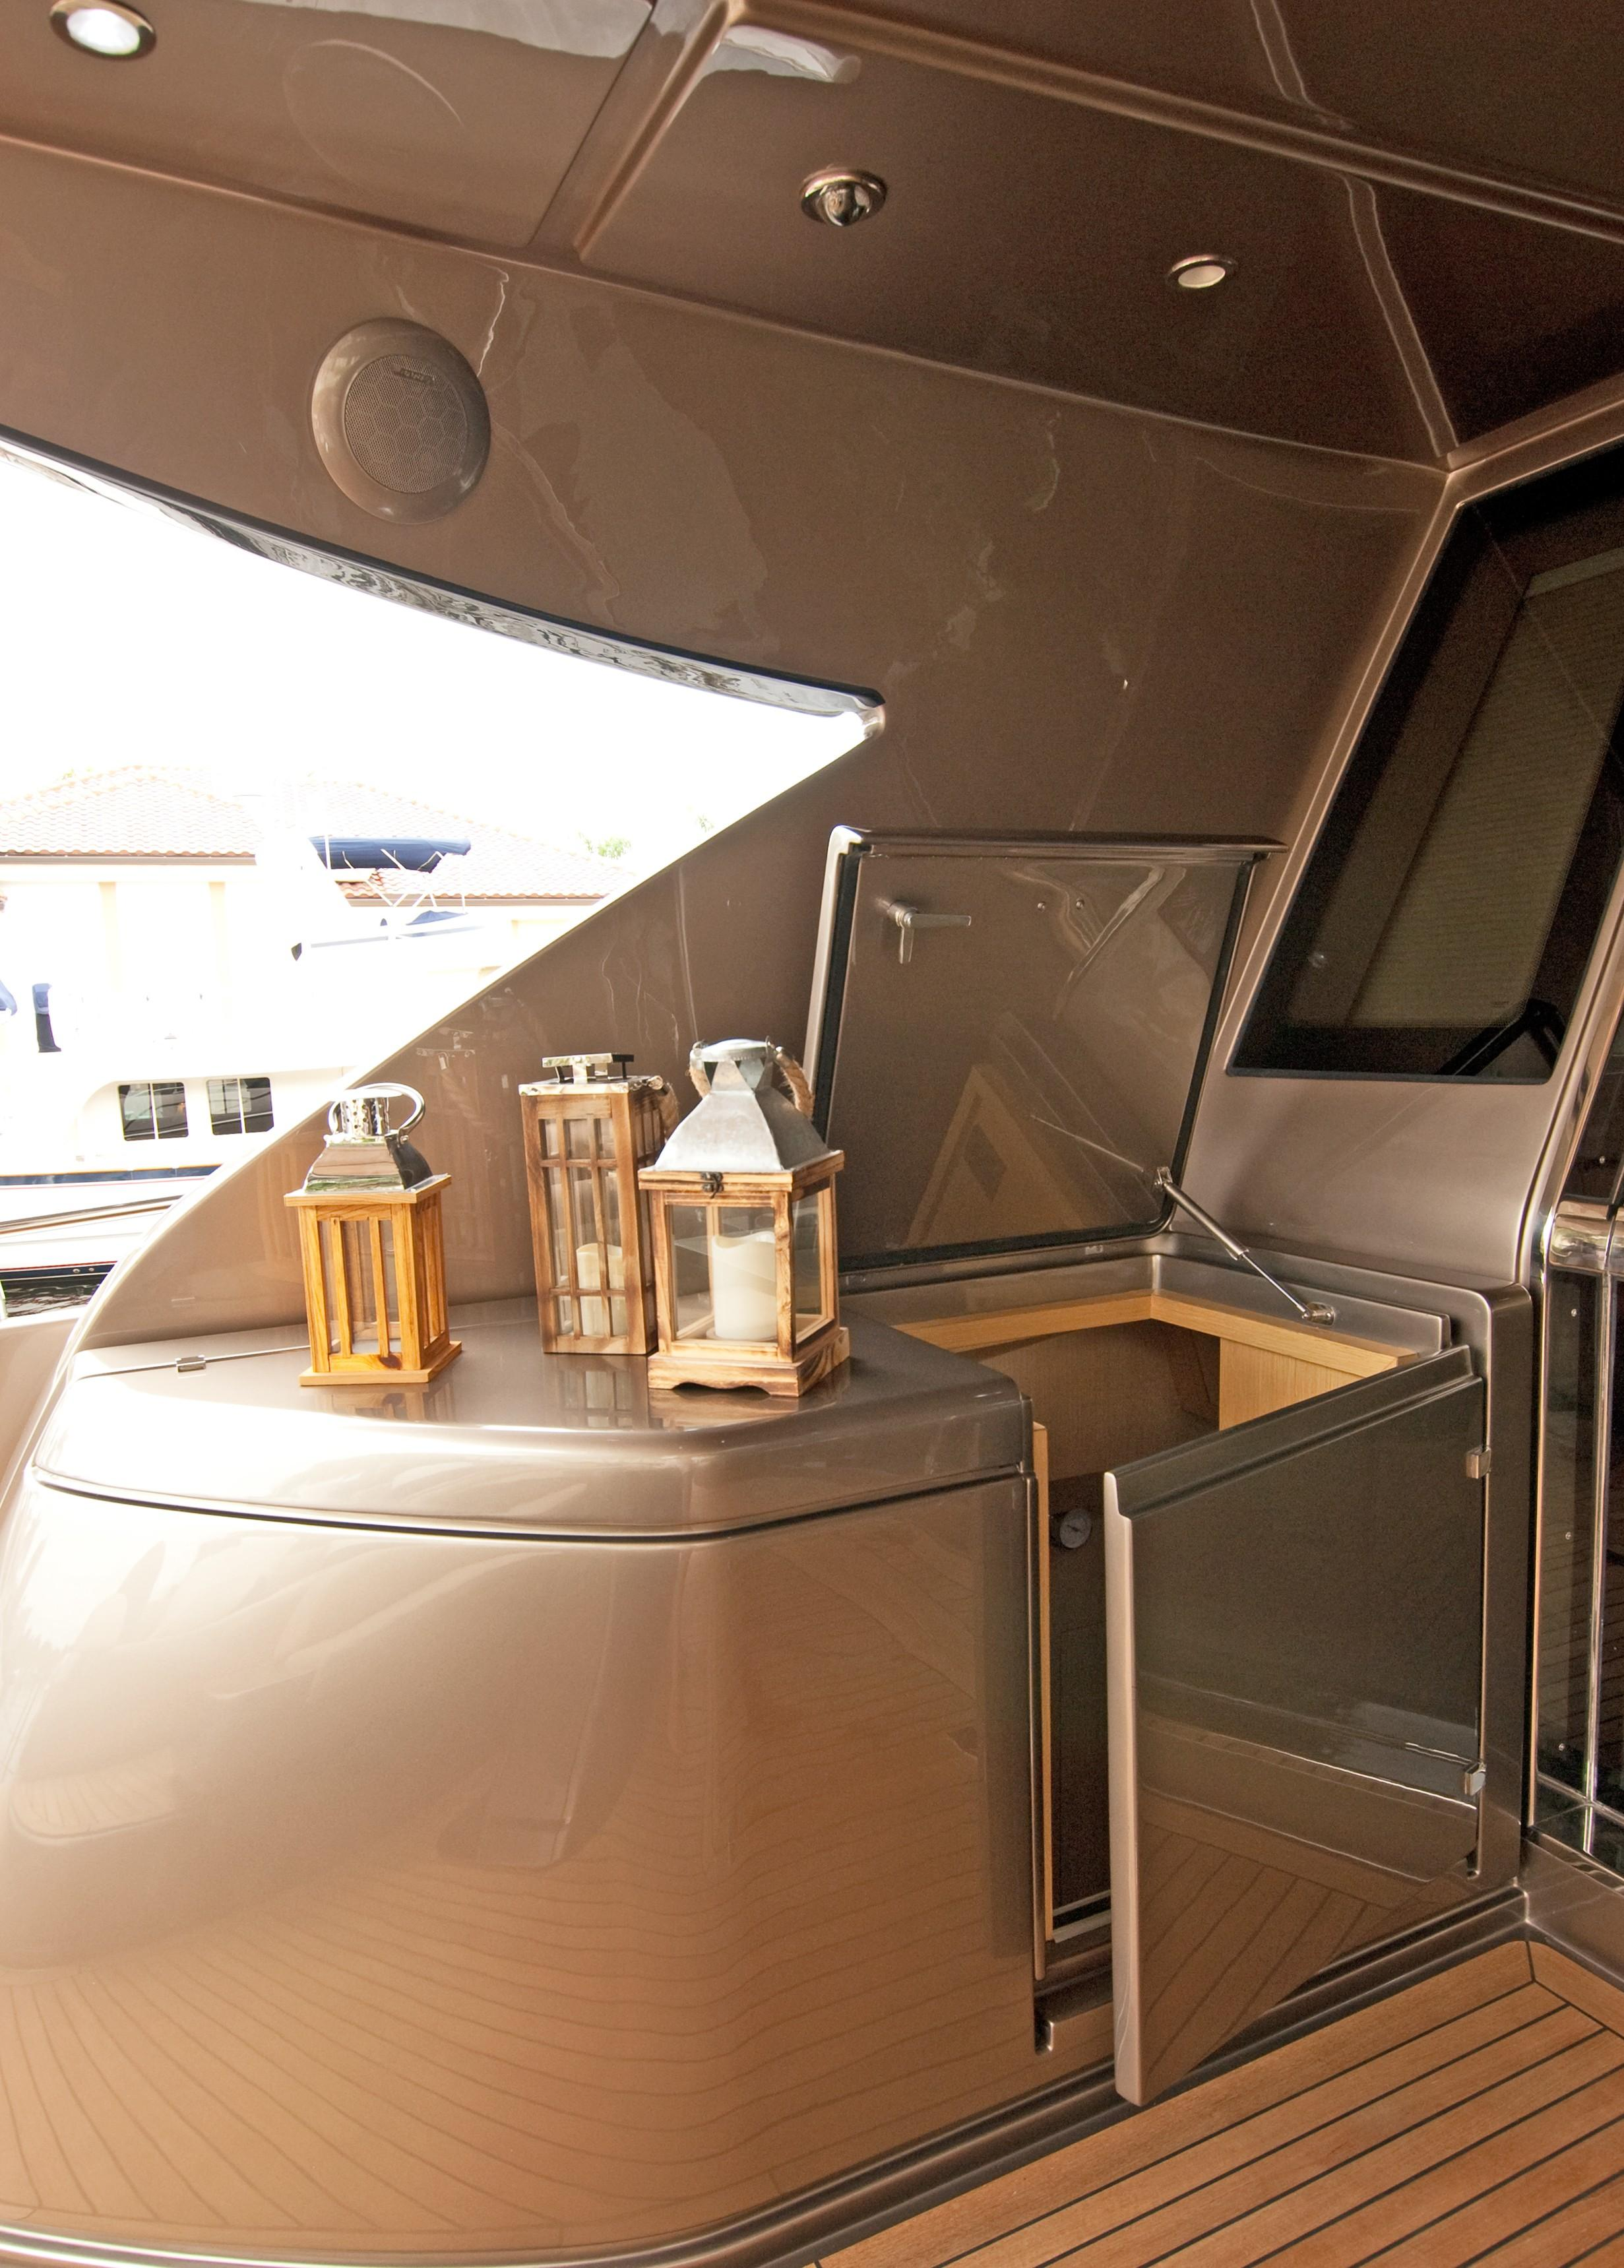 2012 Riva 86 Domino - Aft Deck